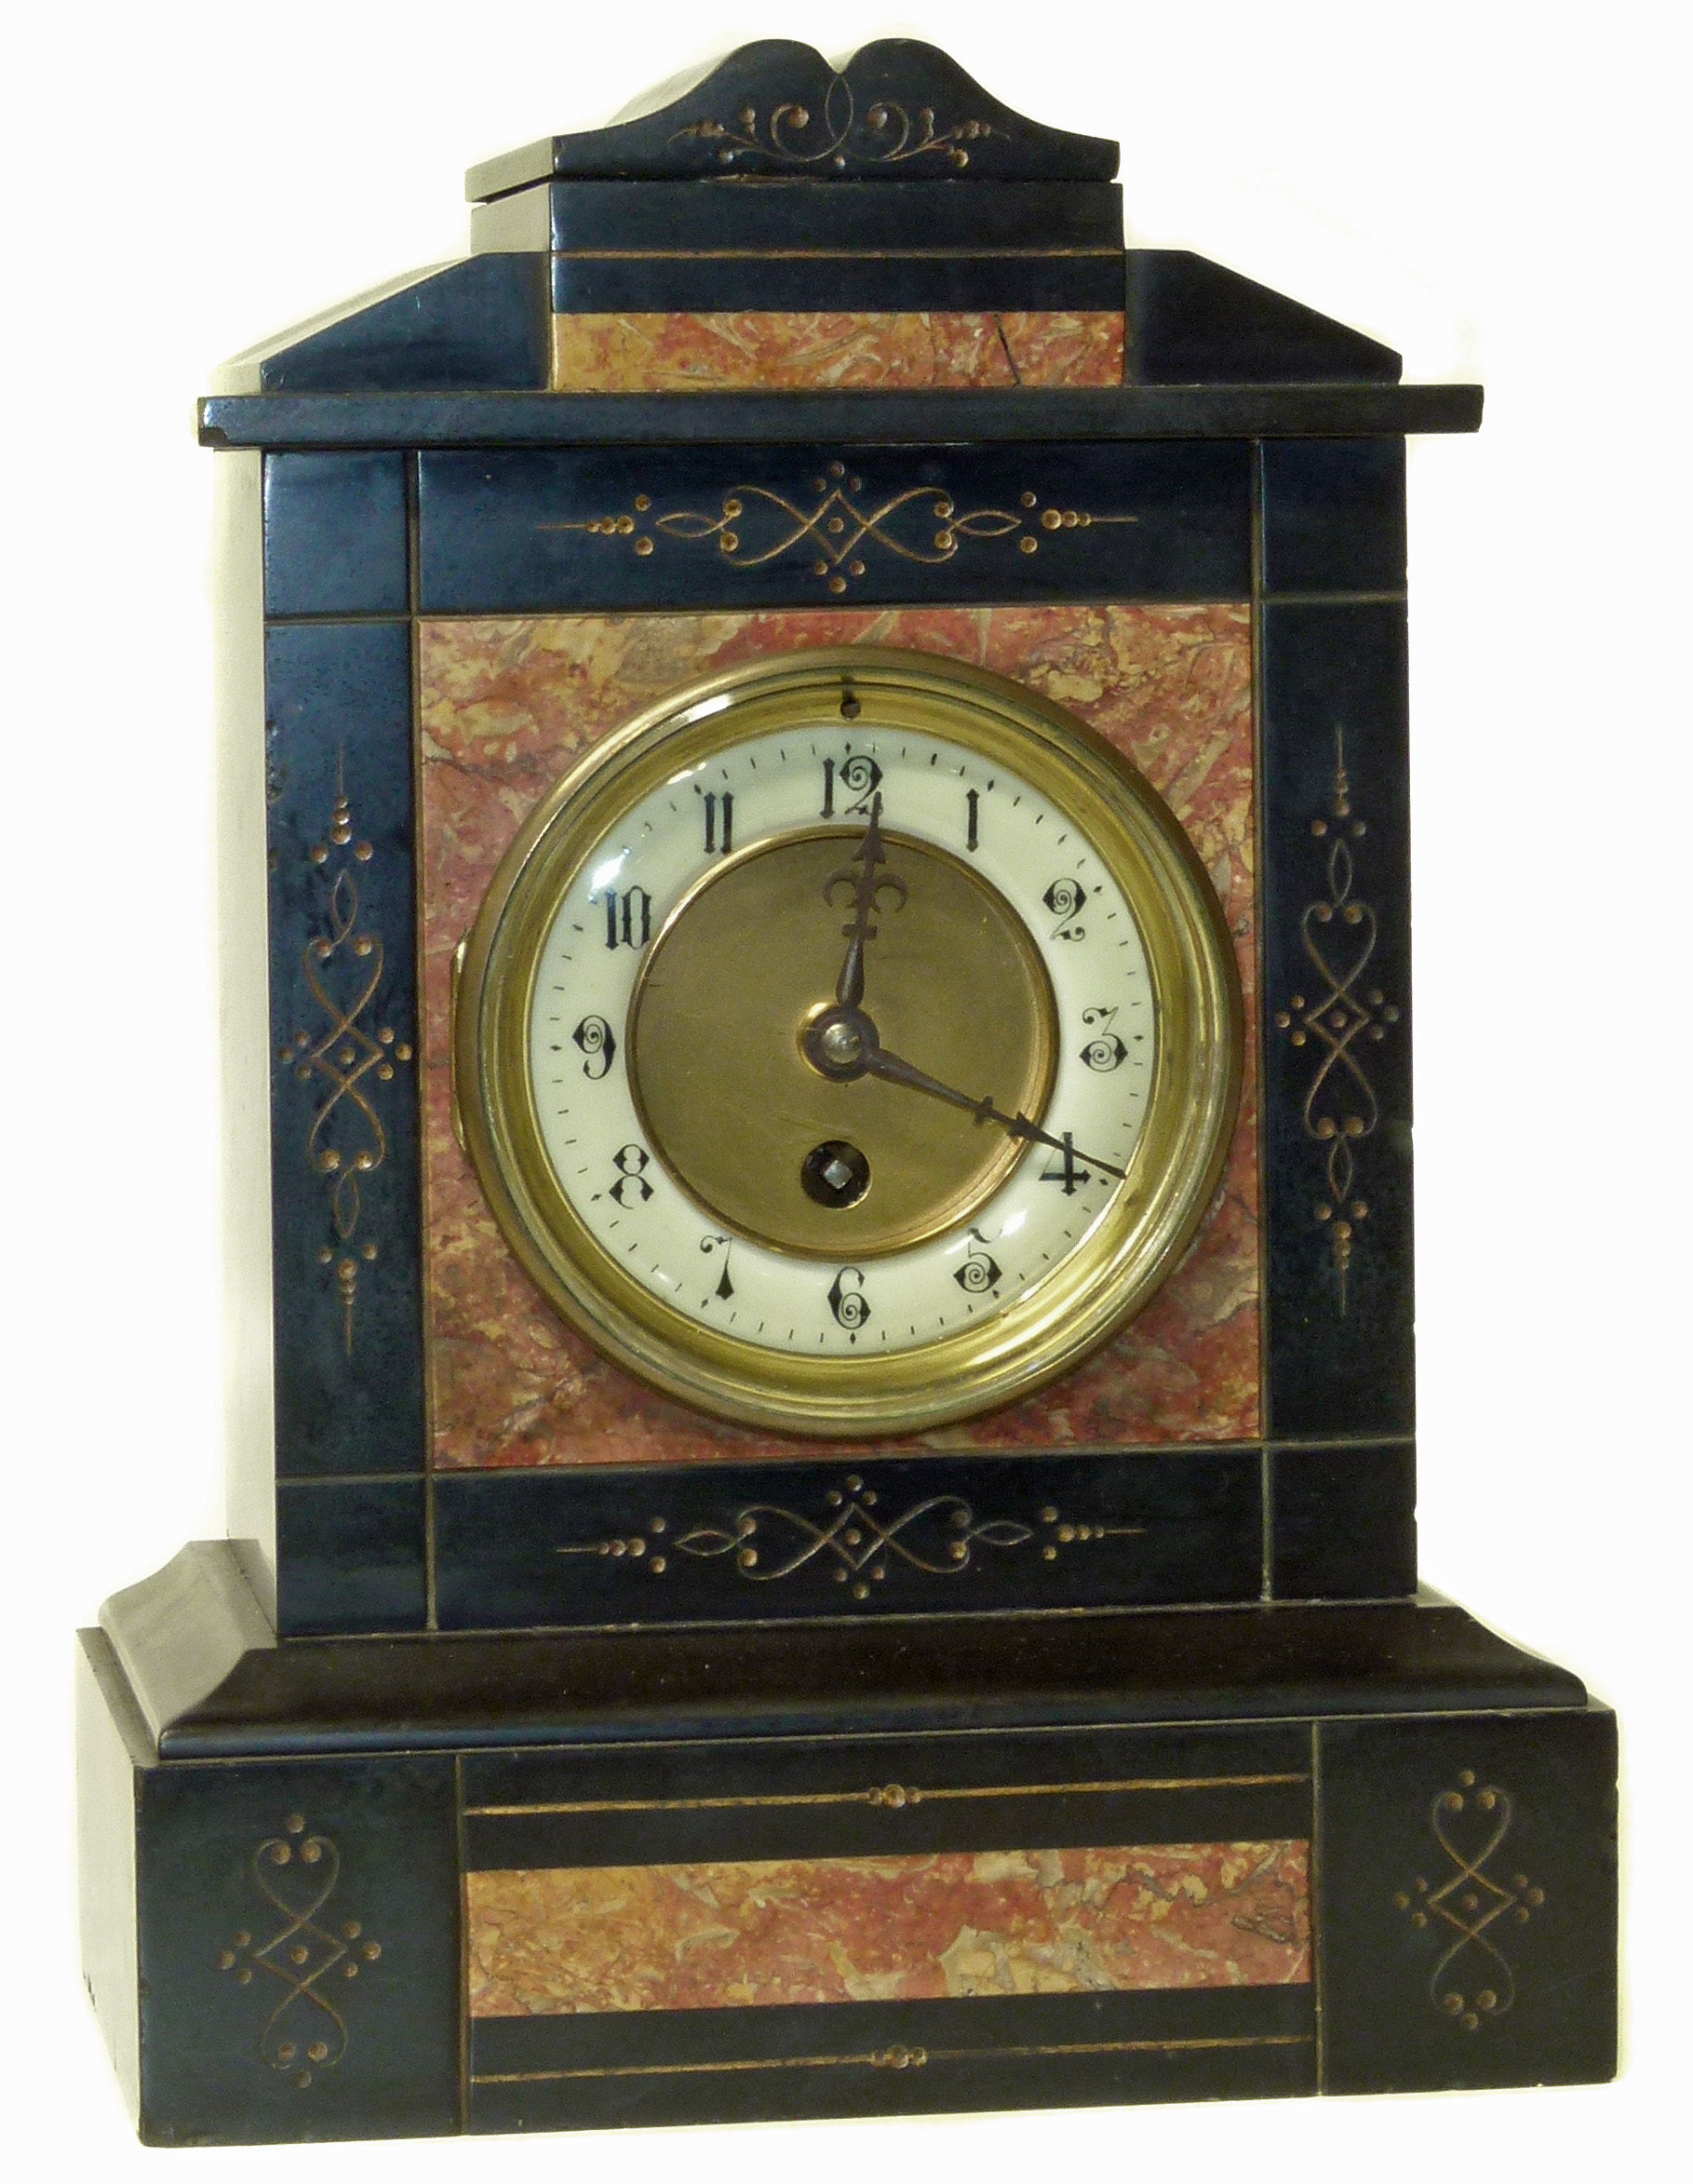 Lot 75 - Edwardian mantle clock with an 8-day movement, slate clock We are unable to do condition reports